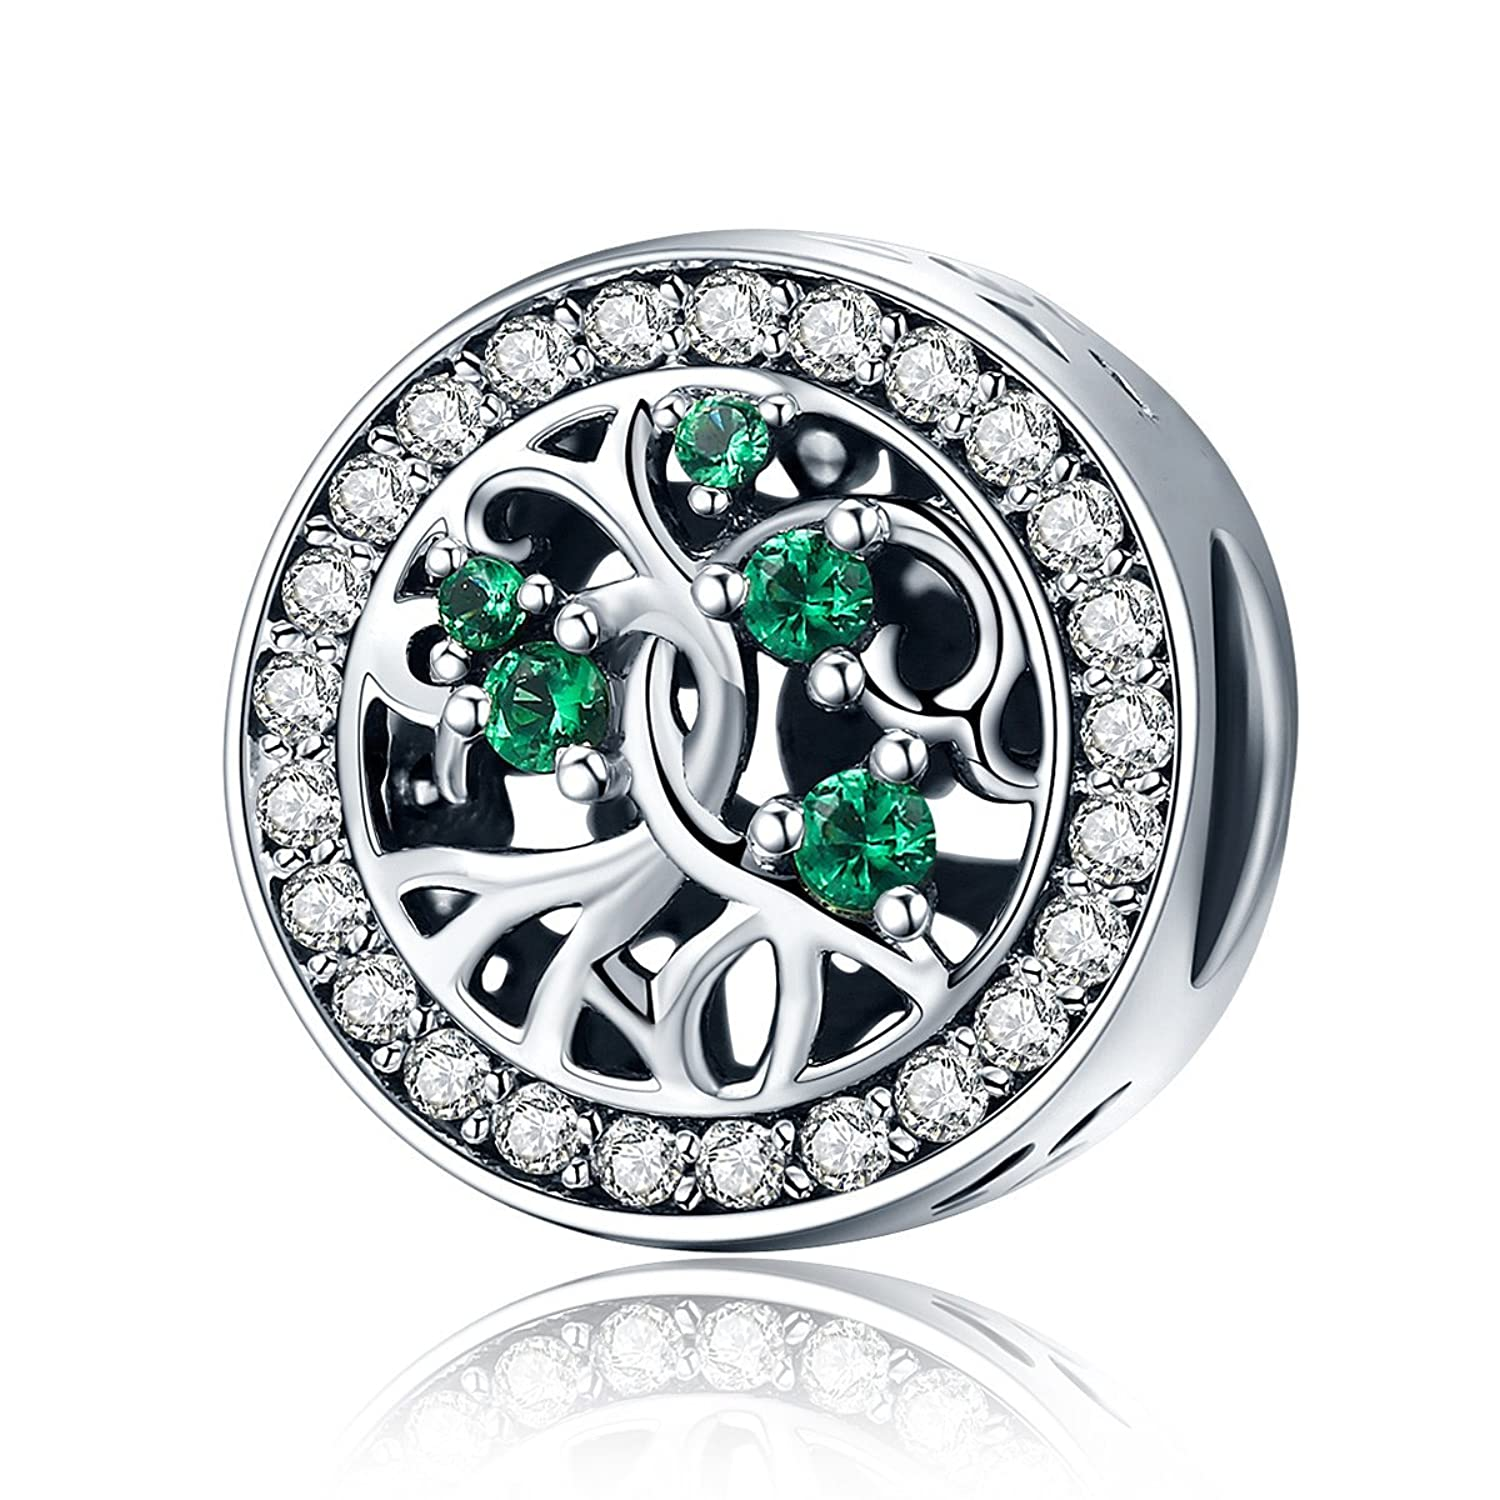 Charm for Women, 925 Sterling Silver Tree Bead Charm with Green CZ fit Pandora Charm Bracelet BJ09006